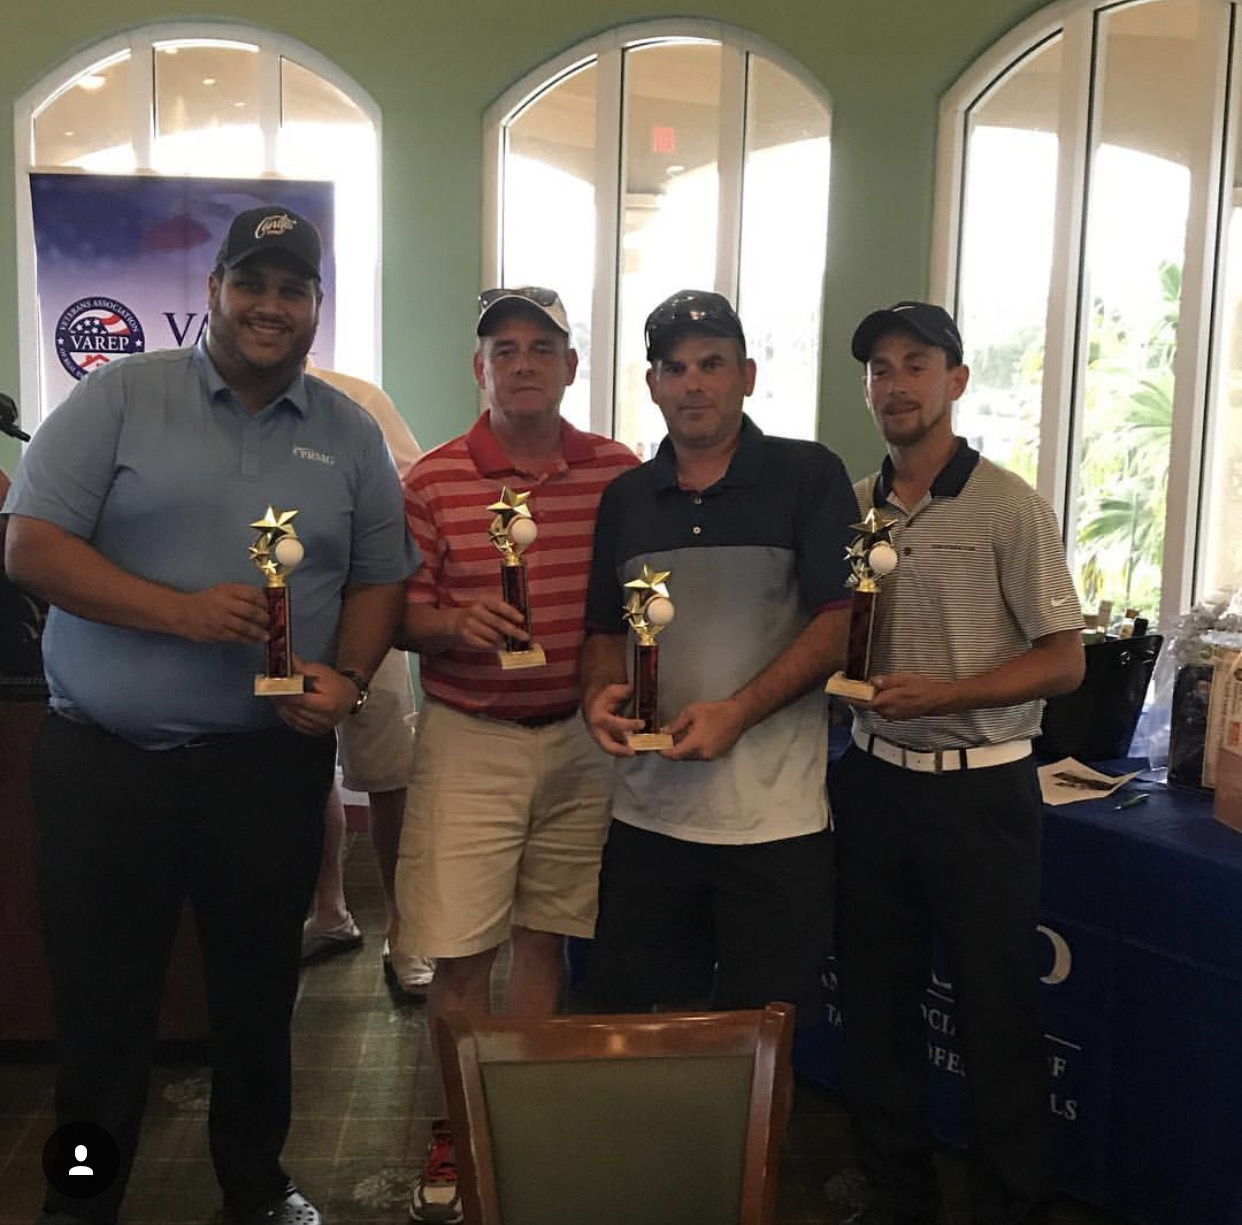 PRMG Coral Gables Branch - Charity Golf Tournament